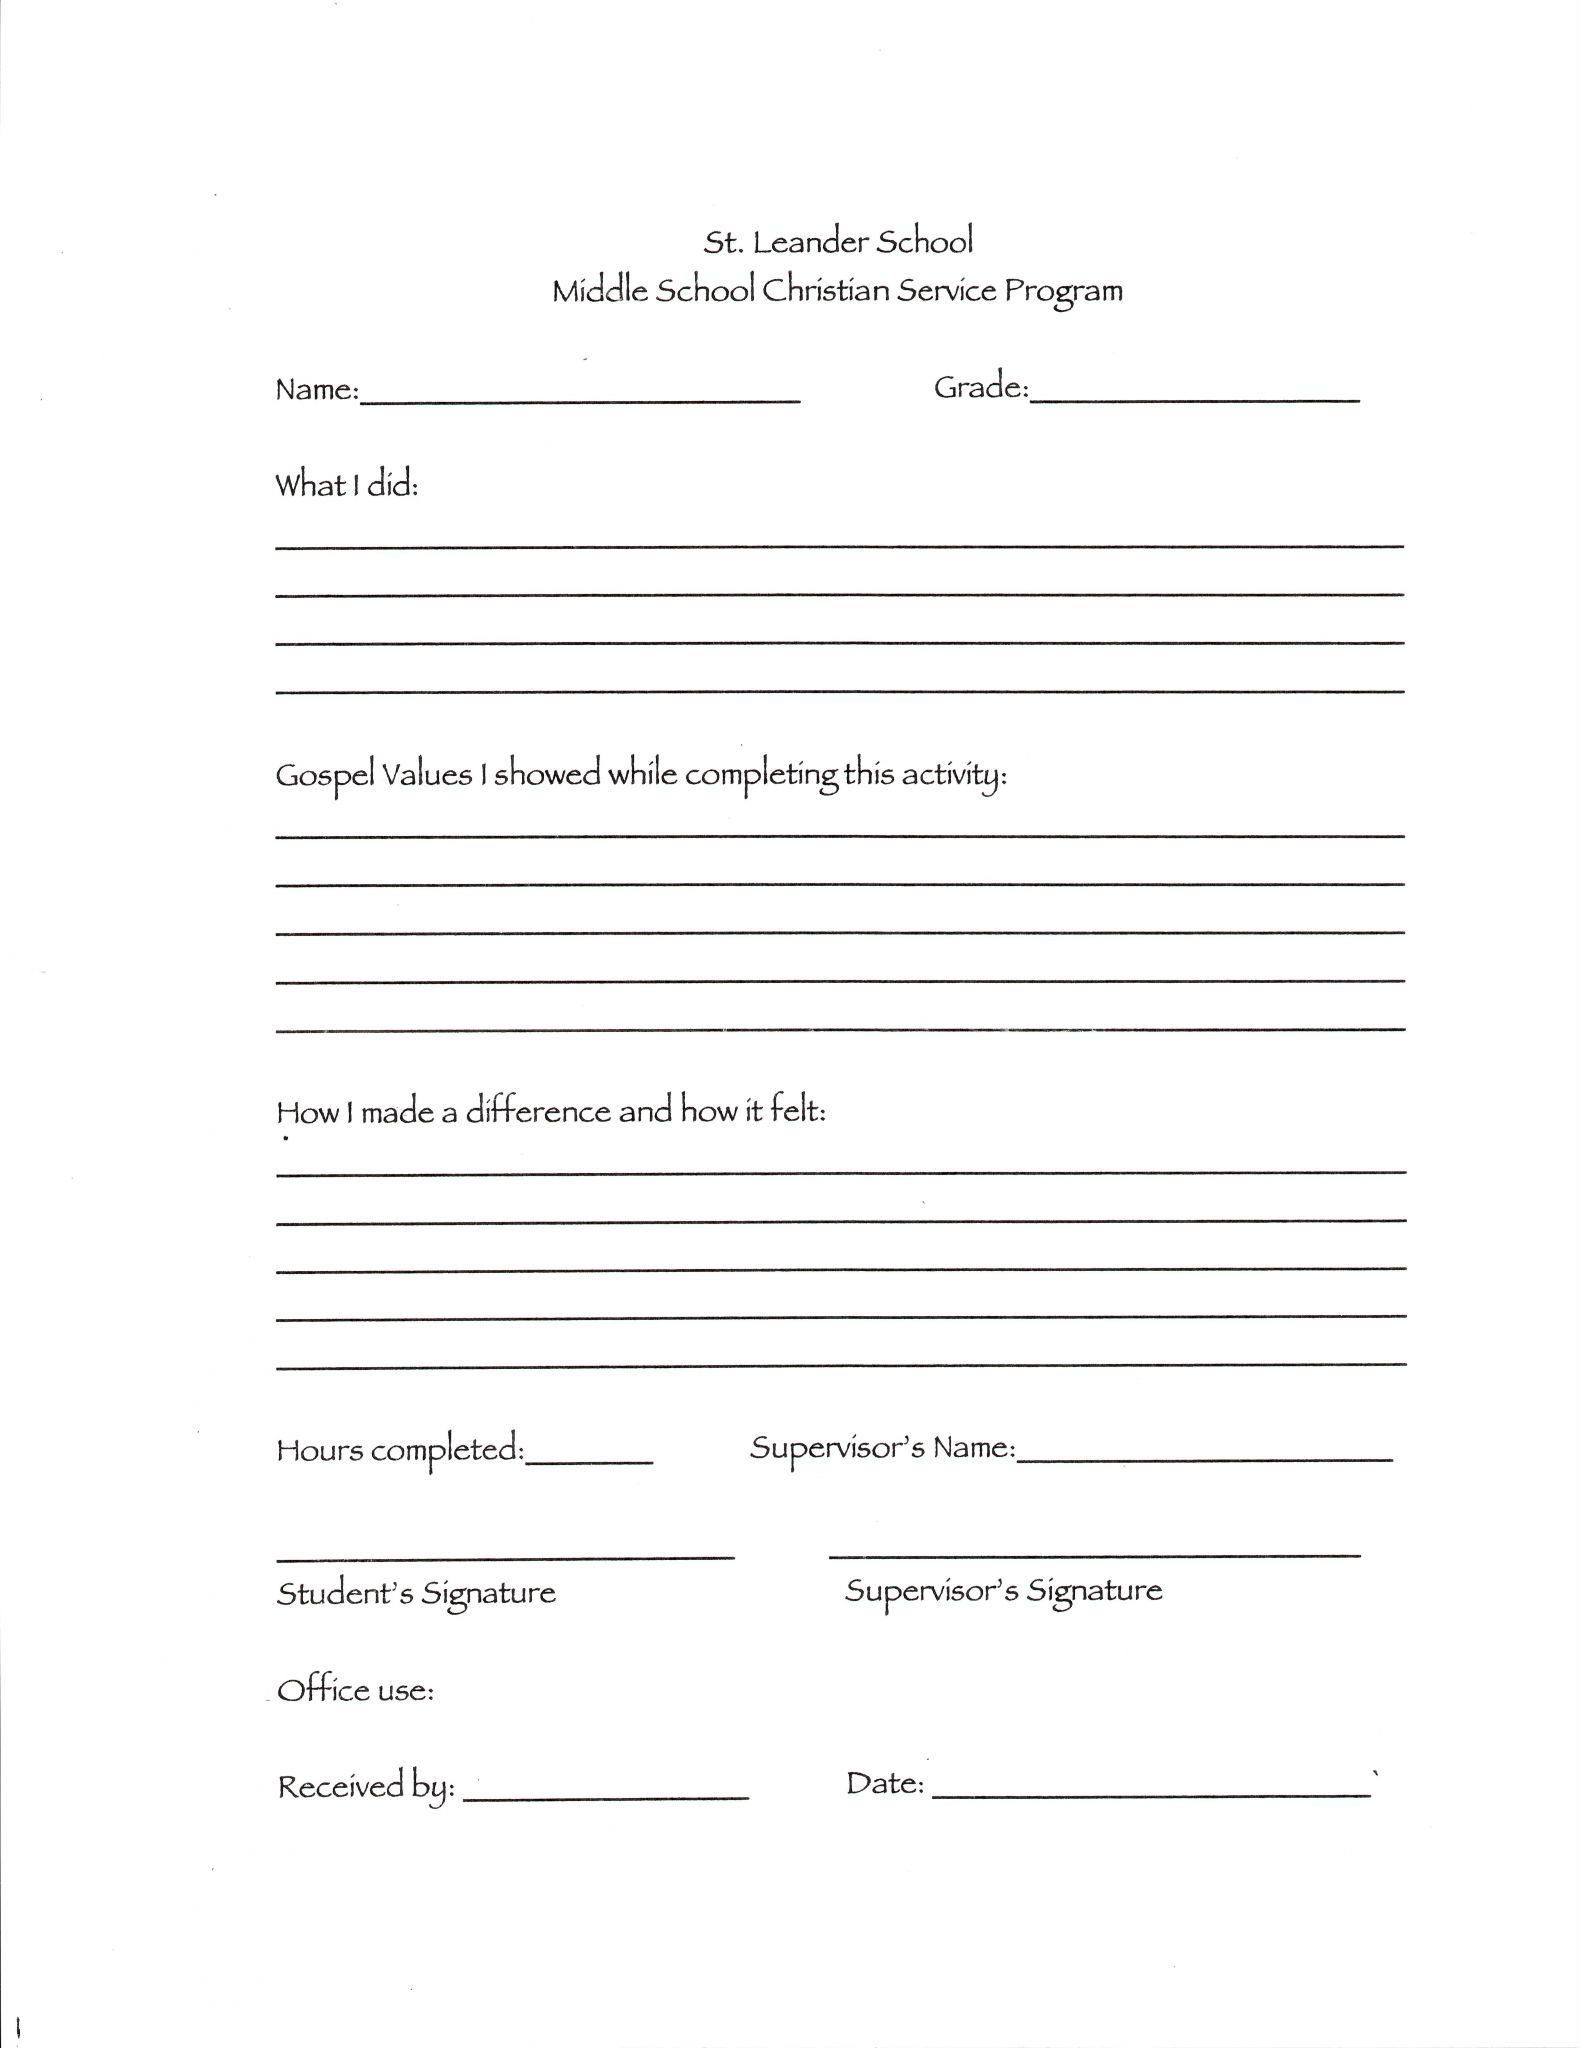 Resume Worksheet For Middle School Students